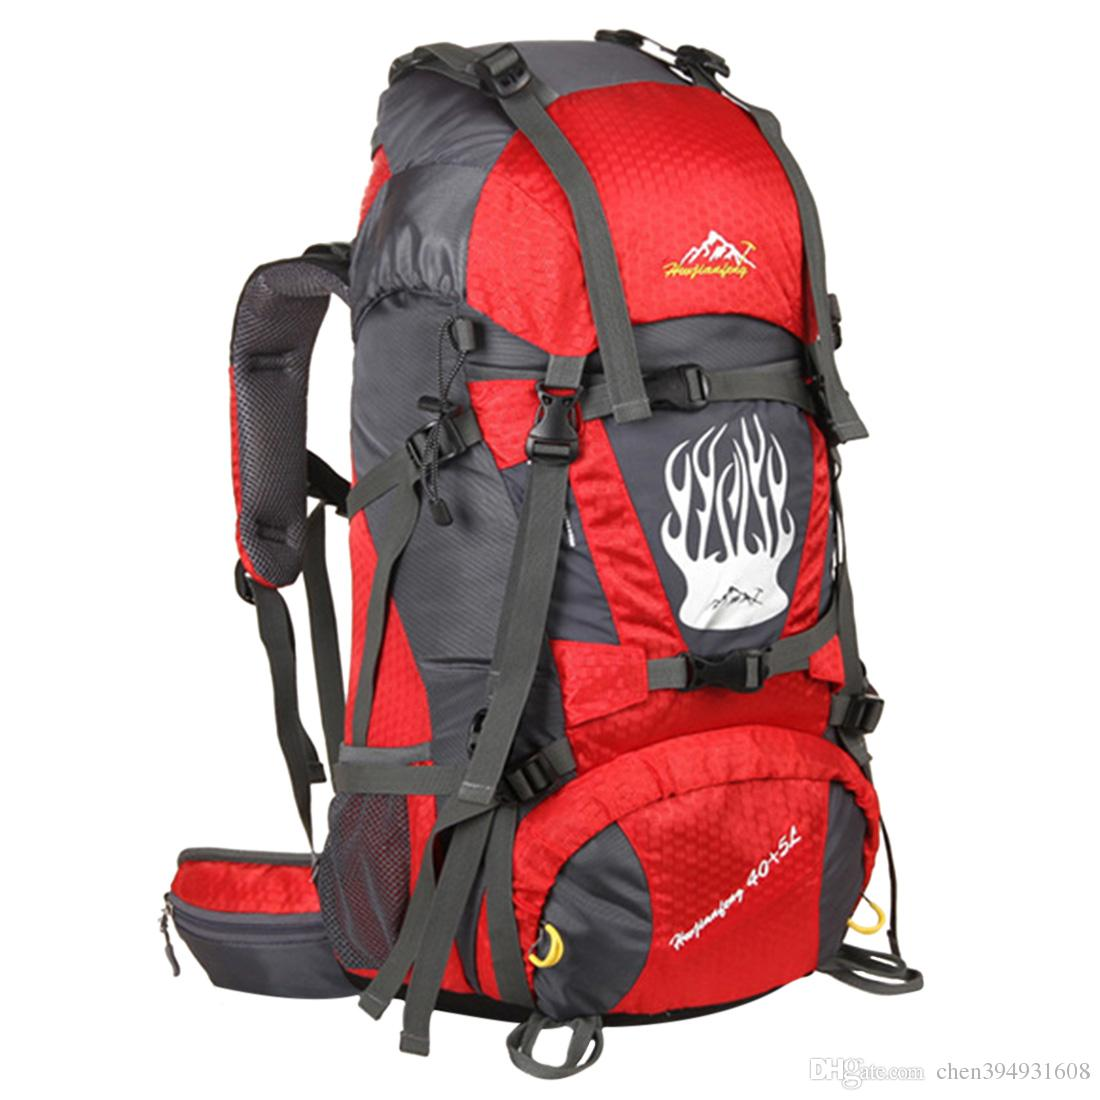 084559049171 2019 2016 New Waterproof Backpack Large Capacity Muti Function Hiking  Backpack Outdoor Bags For Man Travel Bag Camping Equipment From  Chen394931608